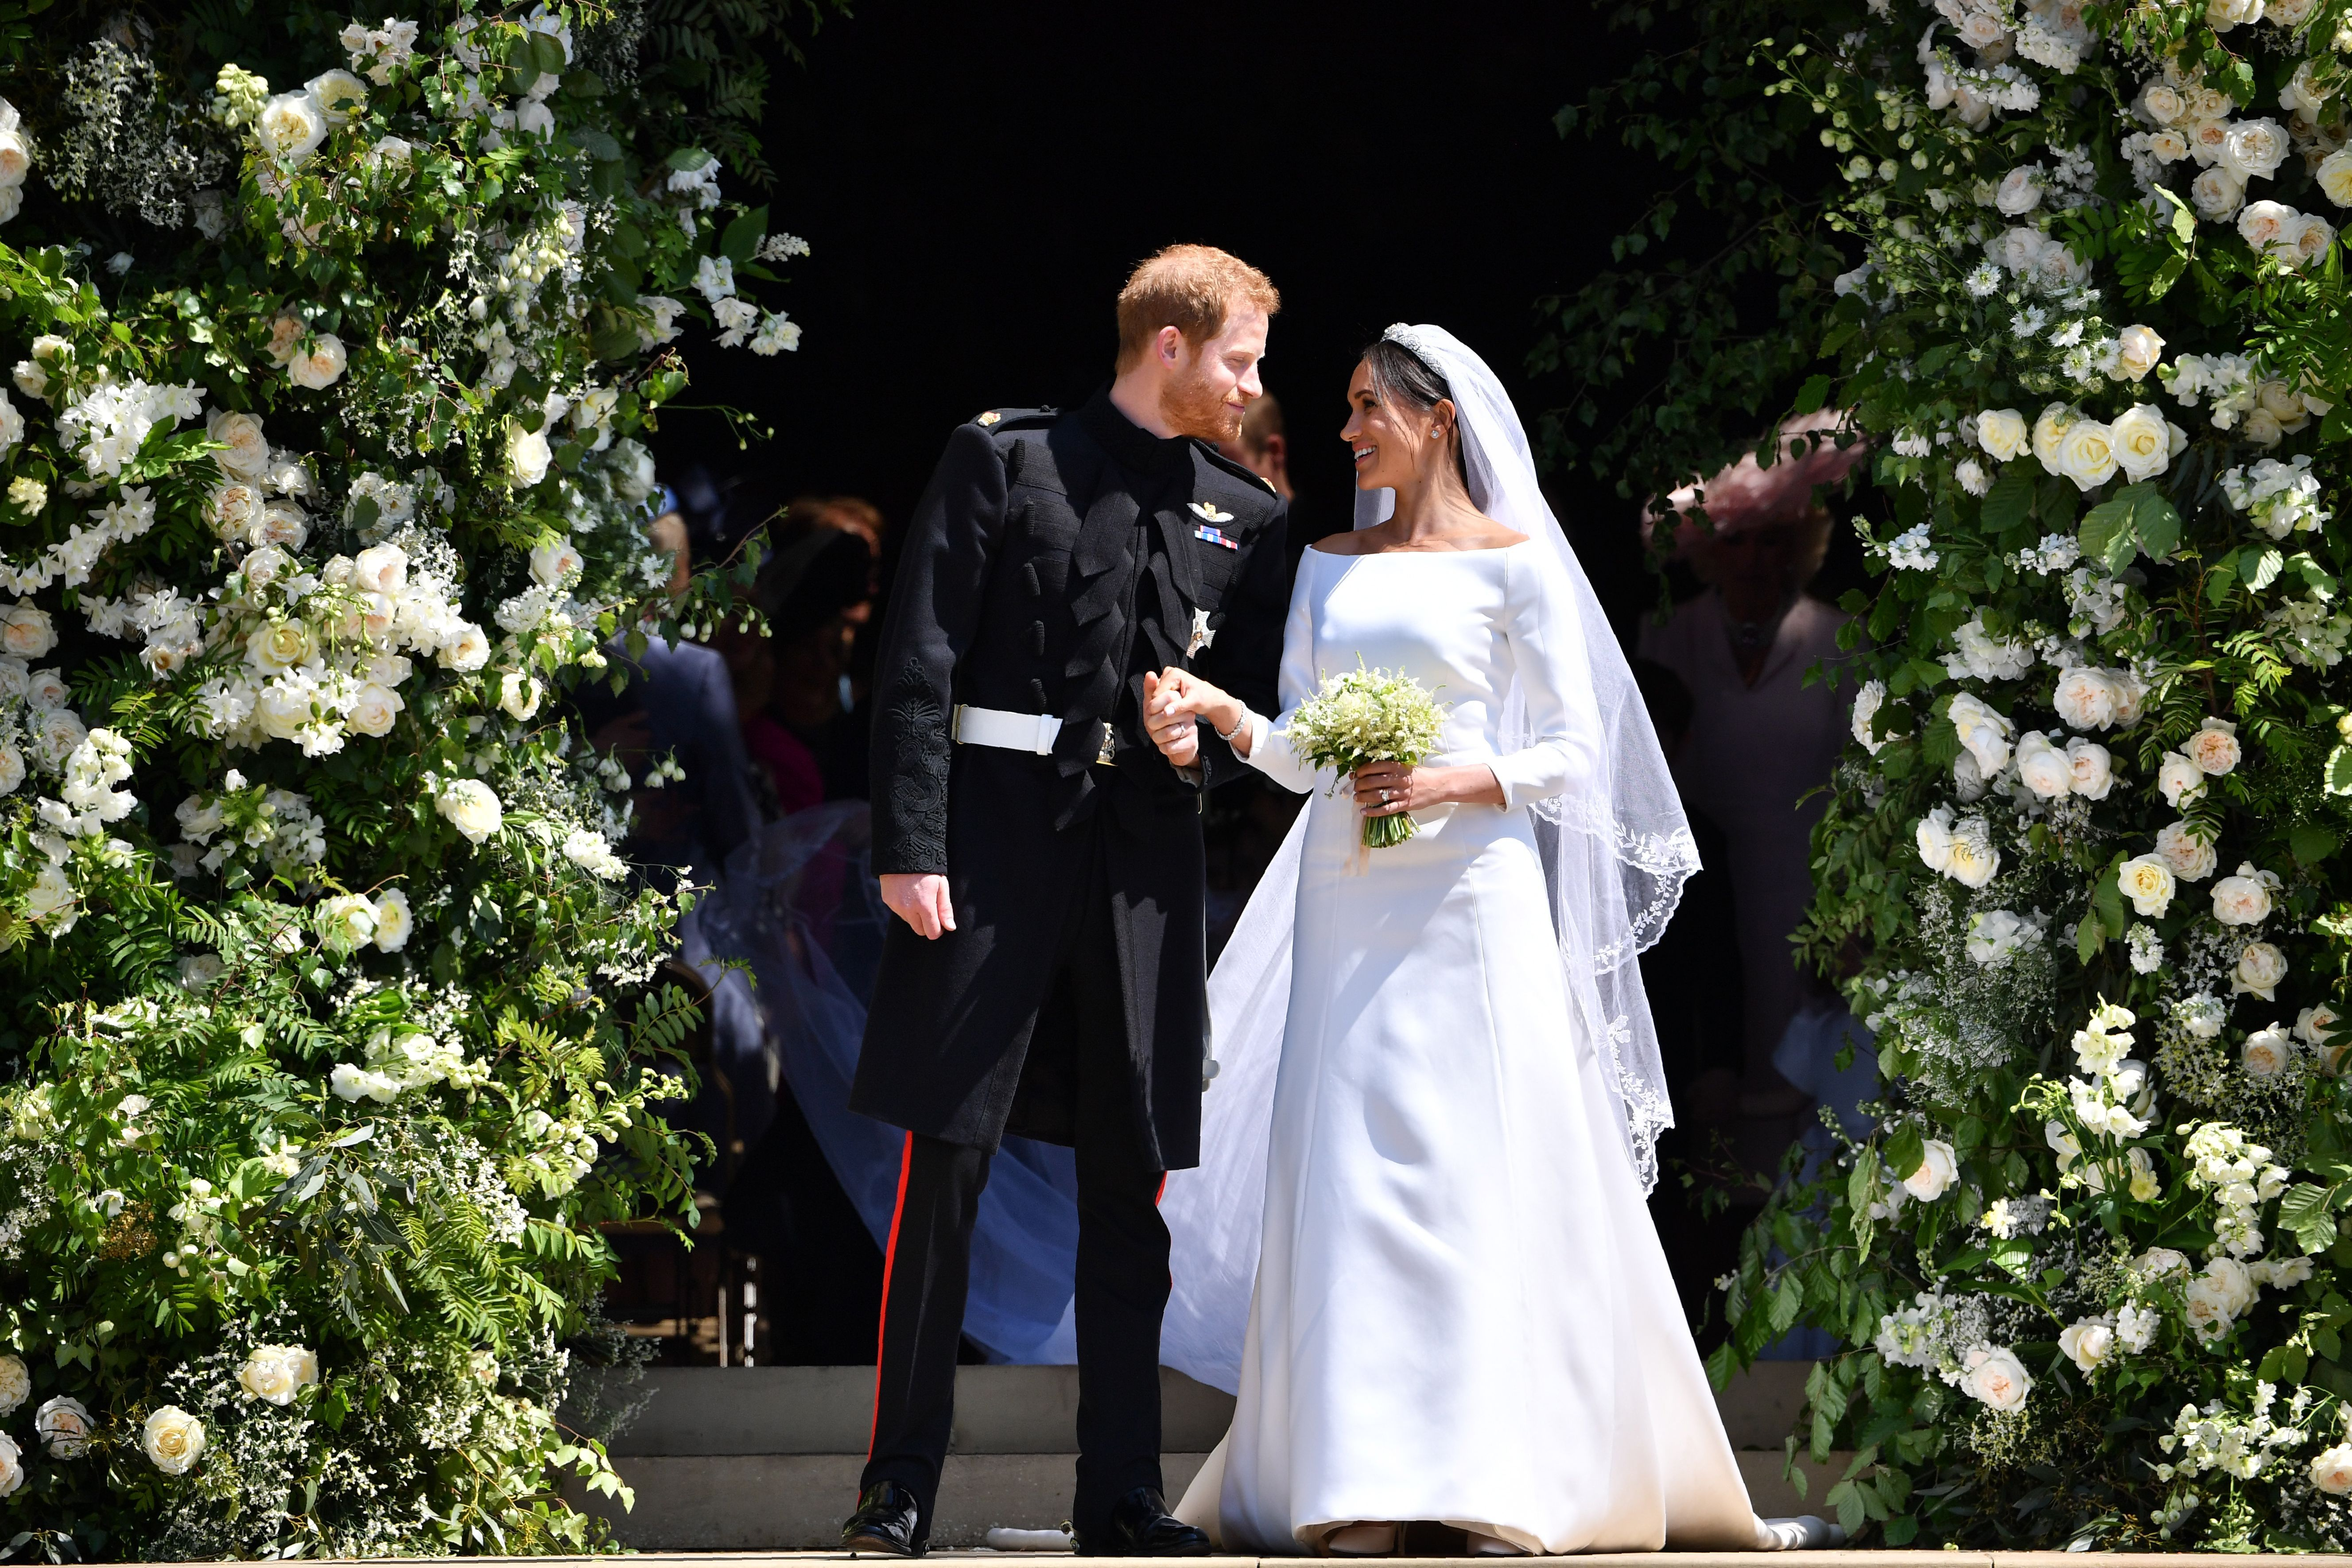 Prince Harry Meghan Markle Royal Wedding Decorations What Will The